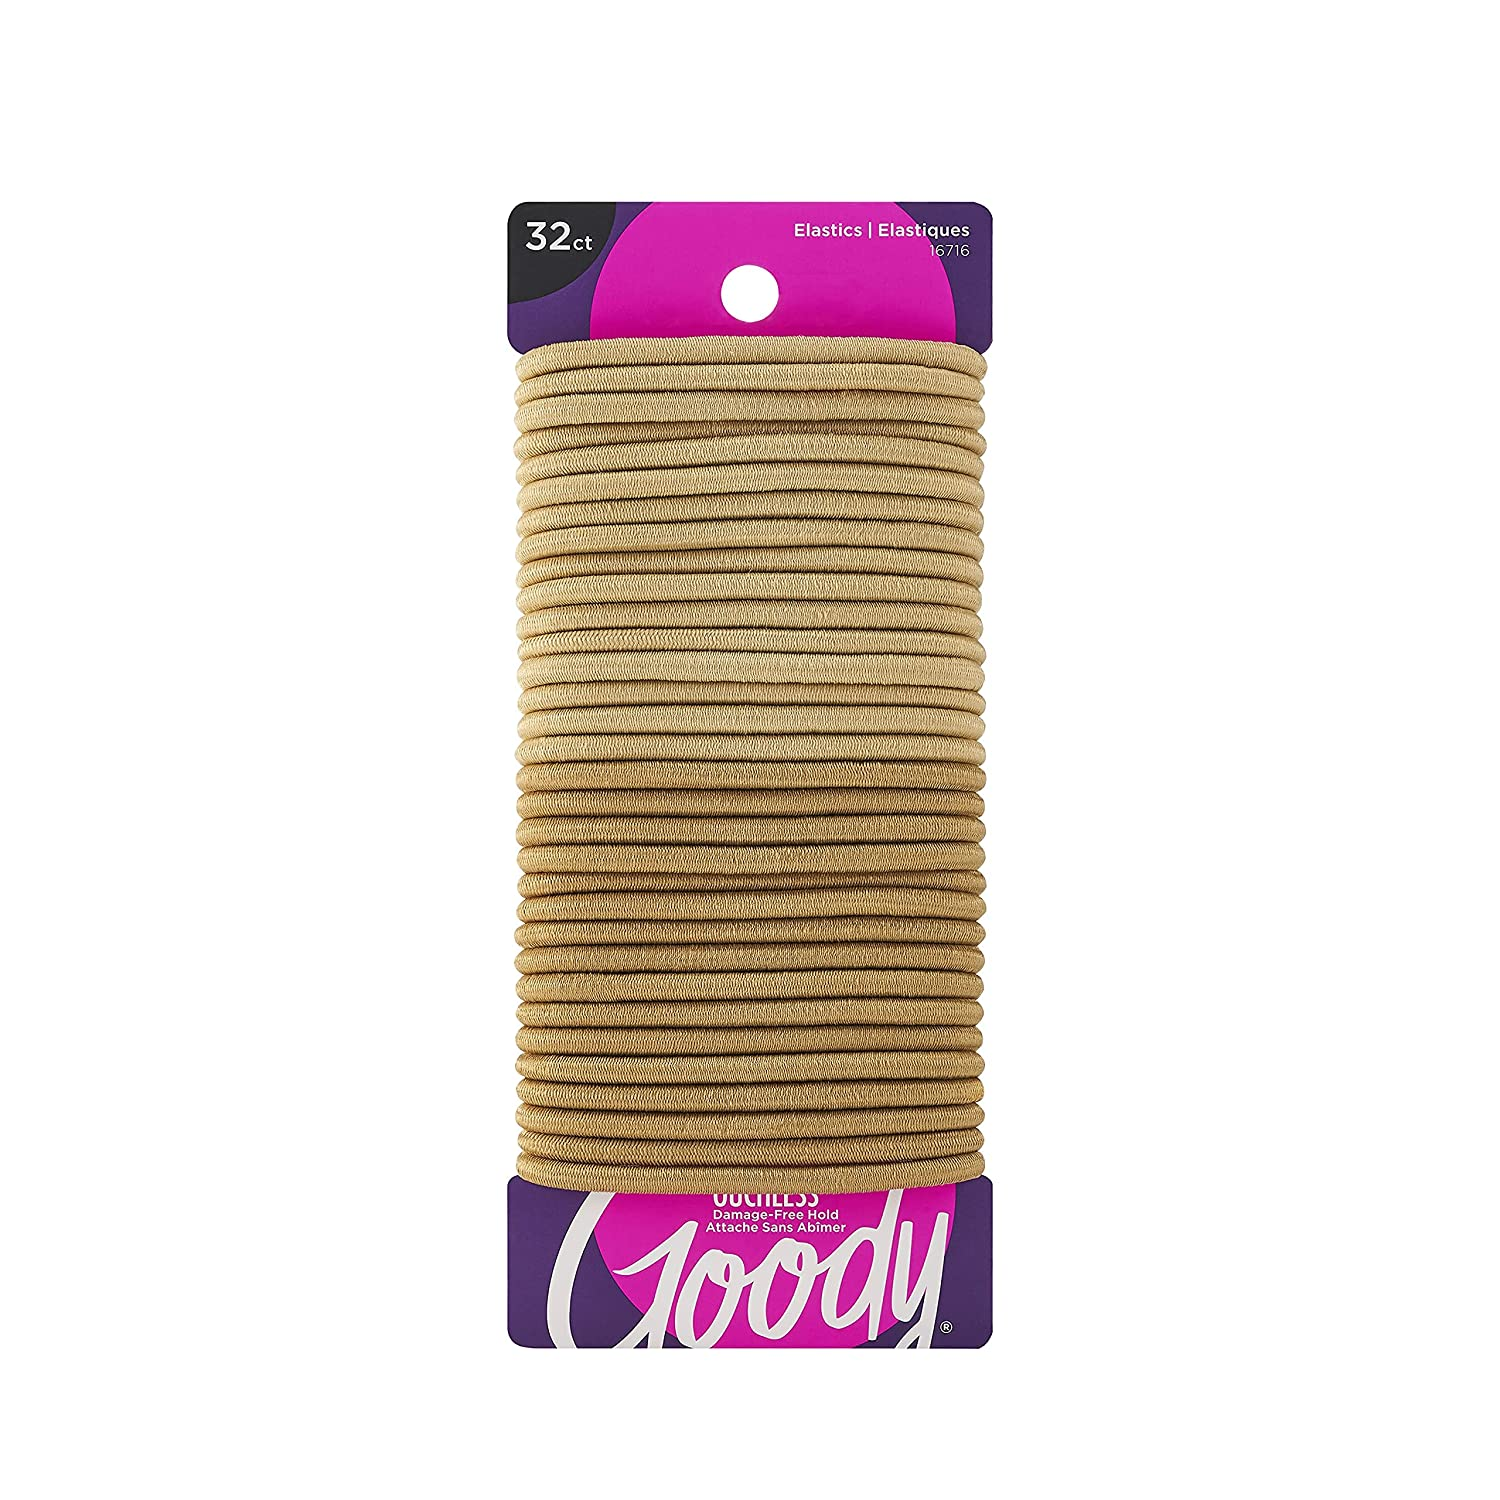 Goody Ouchless Women's Max 75% Japan Maker New OFF Braided Hair M for 4MM Blondes Elastics